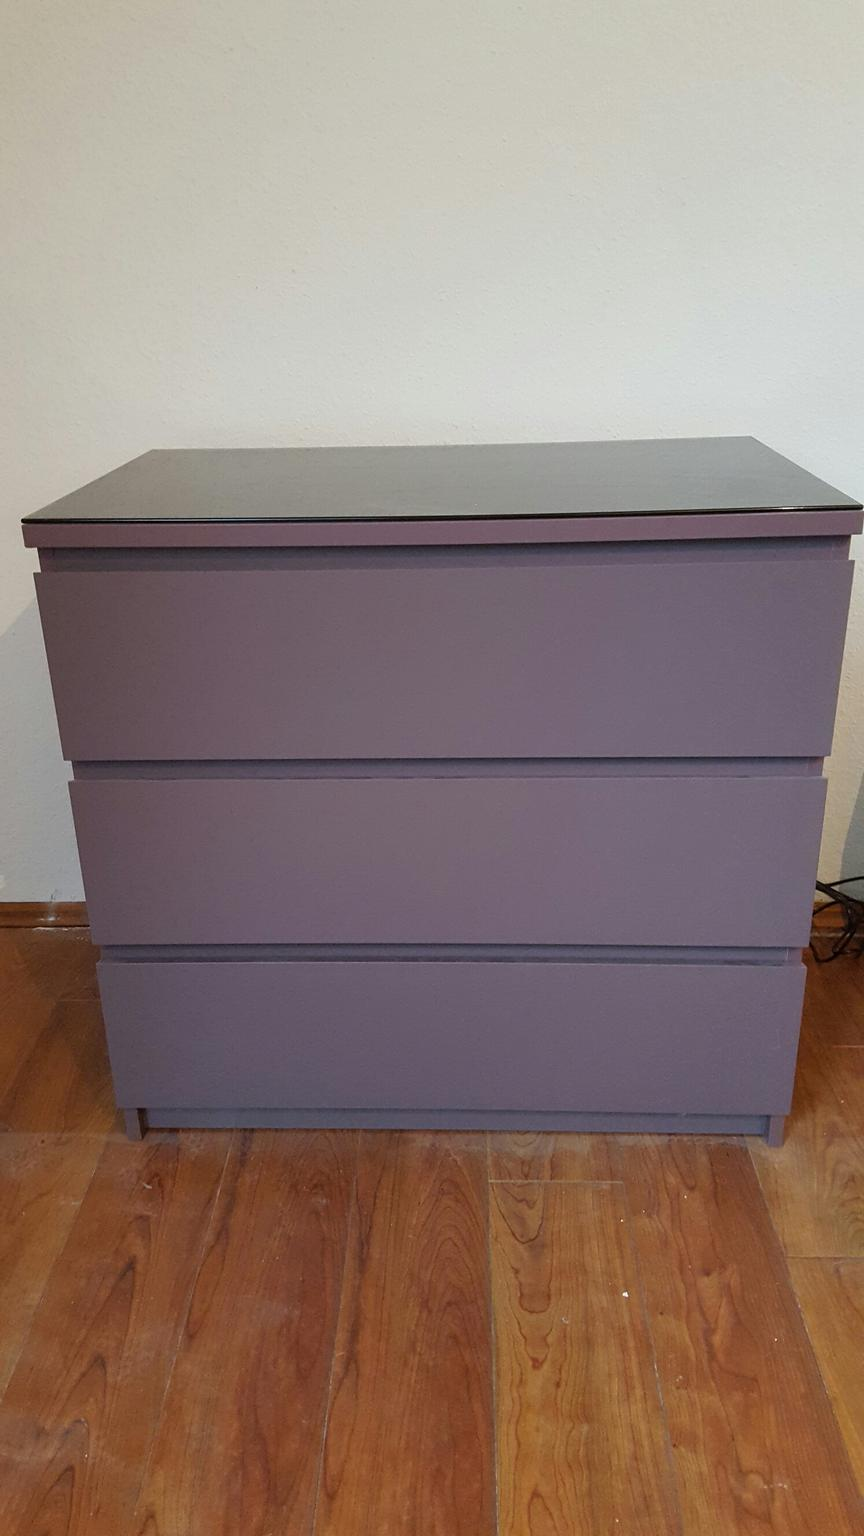 Ikea Malm Kommode 2stuck In Lila Violett In 24969 Grossenwiehe For